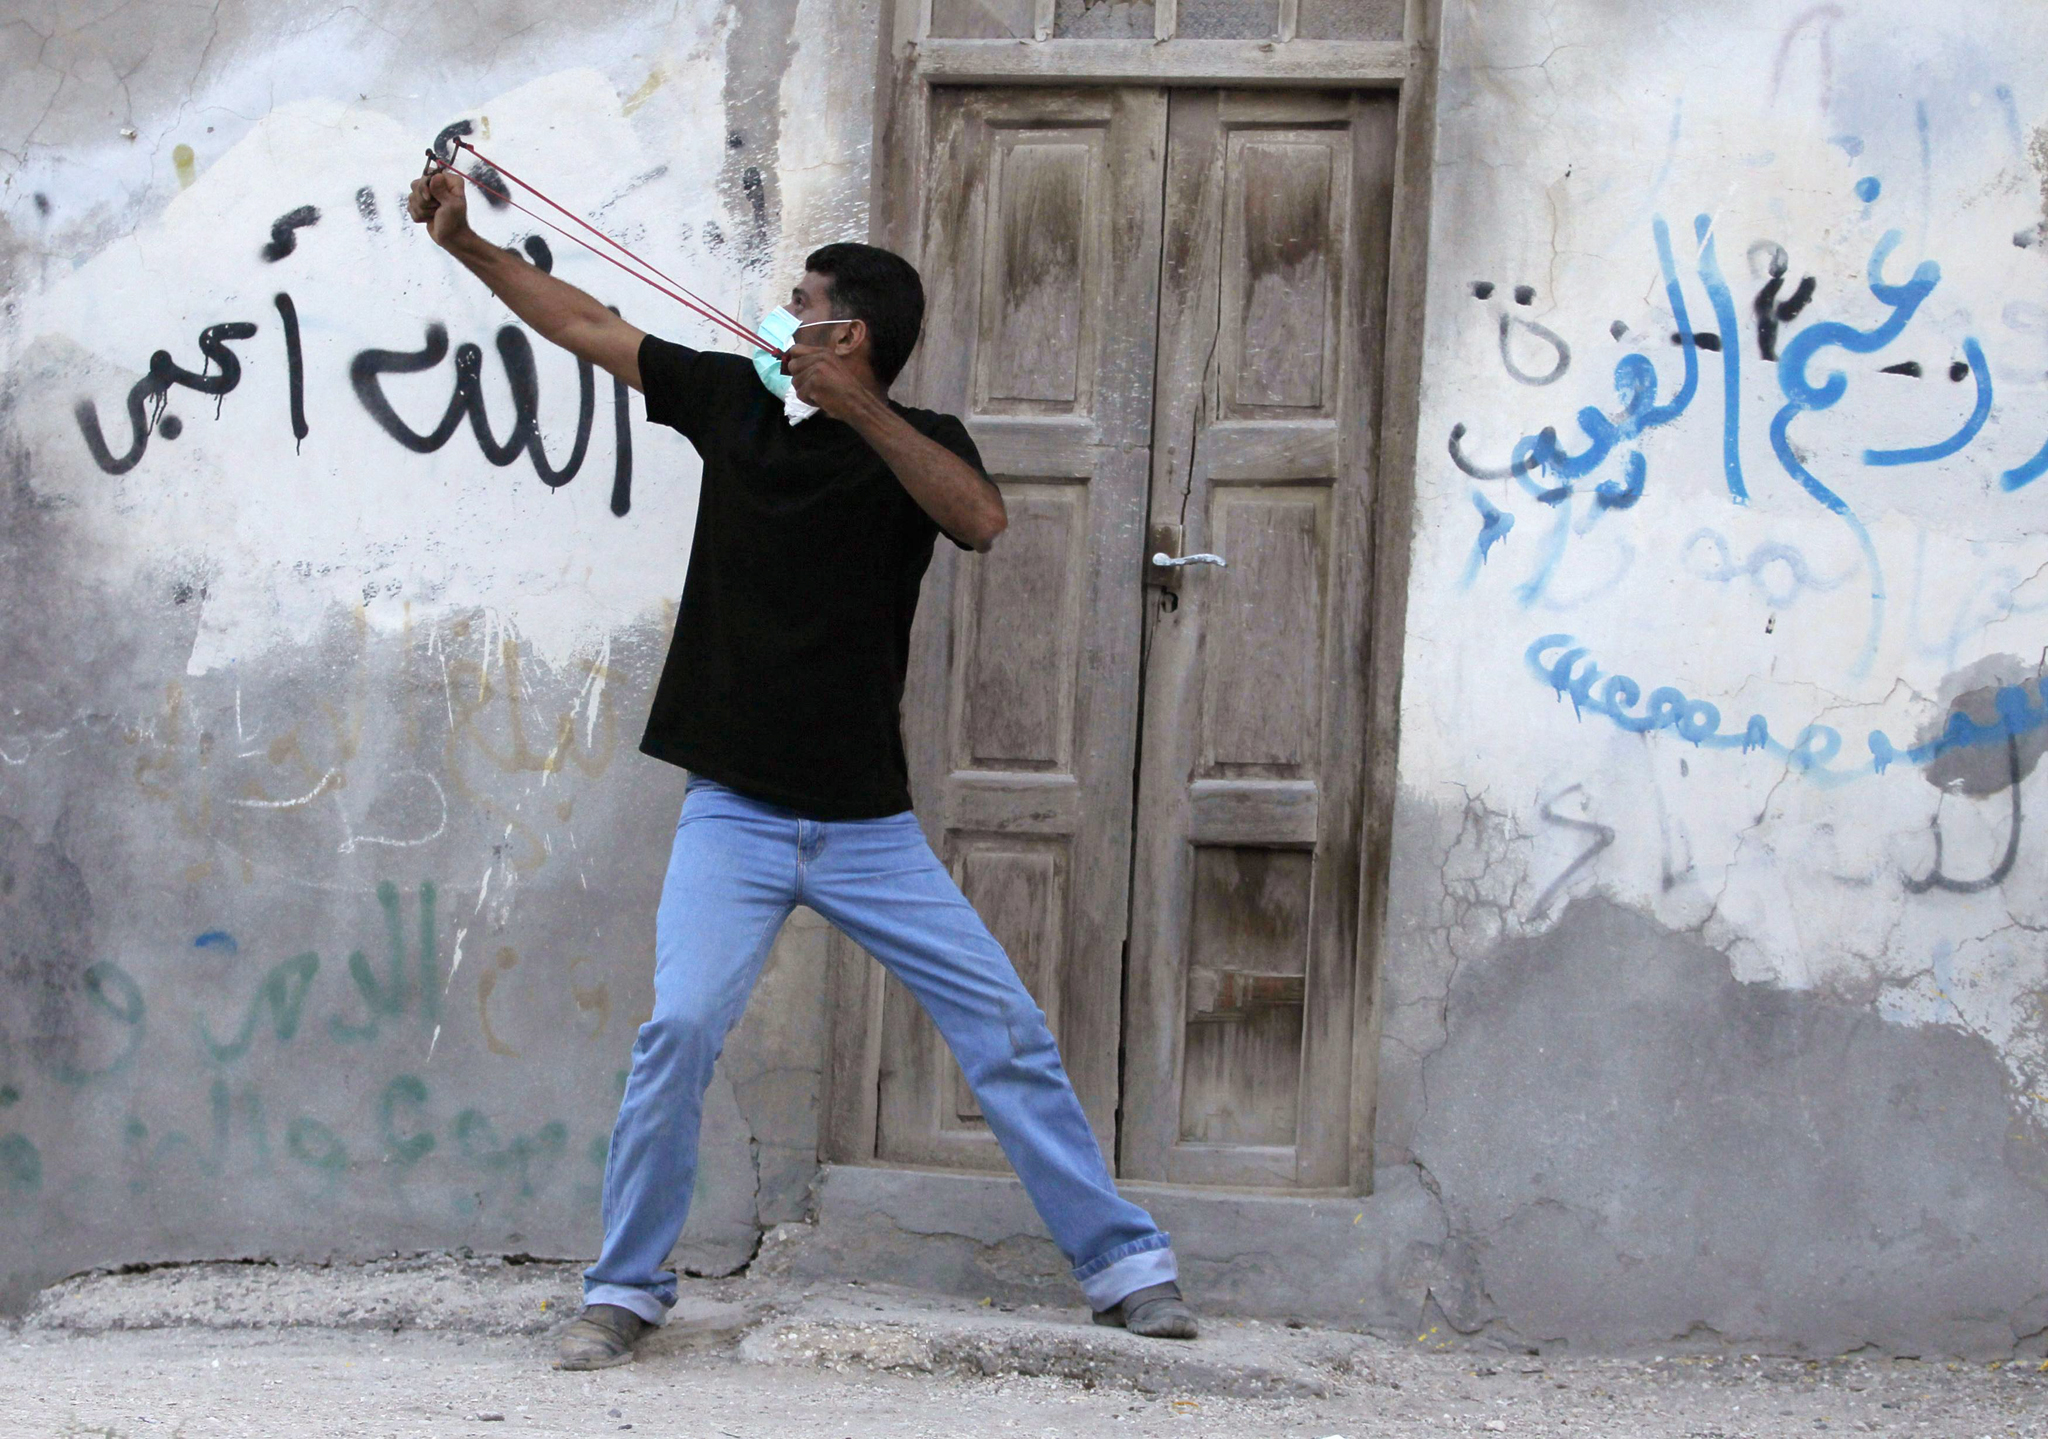 An anti-government protester takes aim at riot police with his slingshot during clashes after the funeral procession of Ali Abbas and Ahmed Al Mesjen who died when their car exploded in the village of Maqsha west of Manama...An anti-government protester takes aim at riot police with his slingshot during clashes after the funeral procession of Ali Abbas and Ahmed Al Mesjen who died when their car exploded in the village of Maqsha west of Manama, April 22, 2014. REUTERS/Hamad I Mohammed (BAHRAIN - T